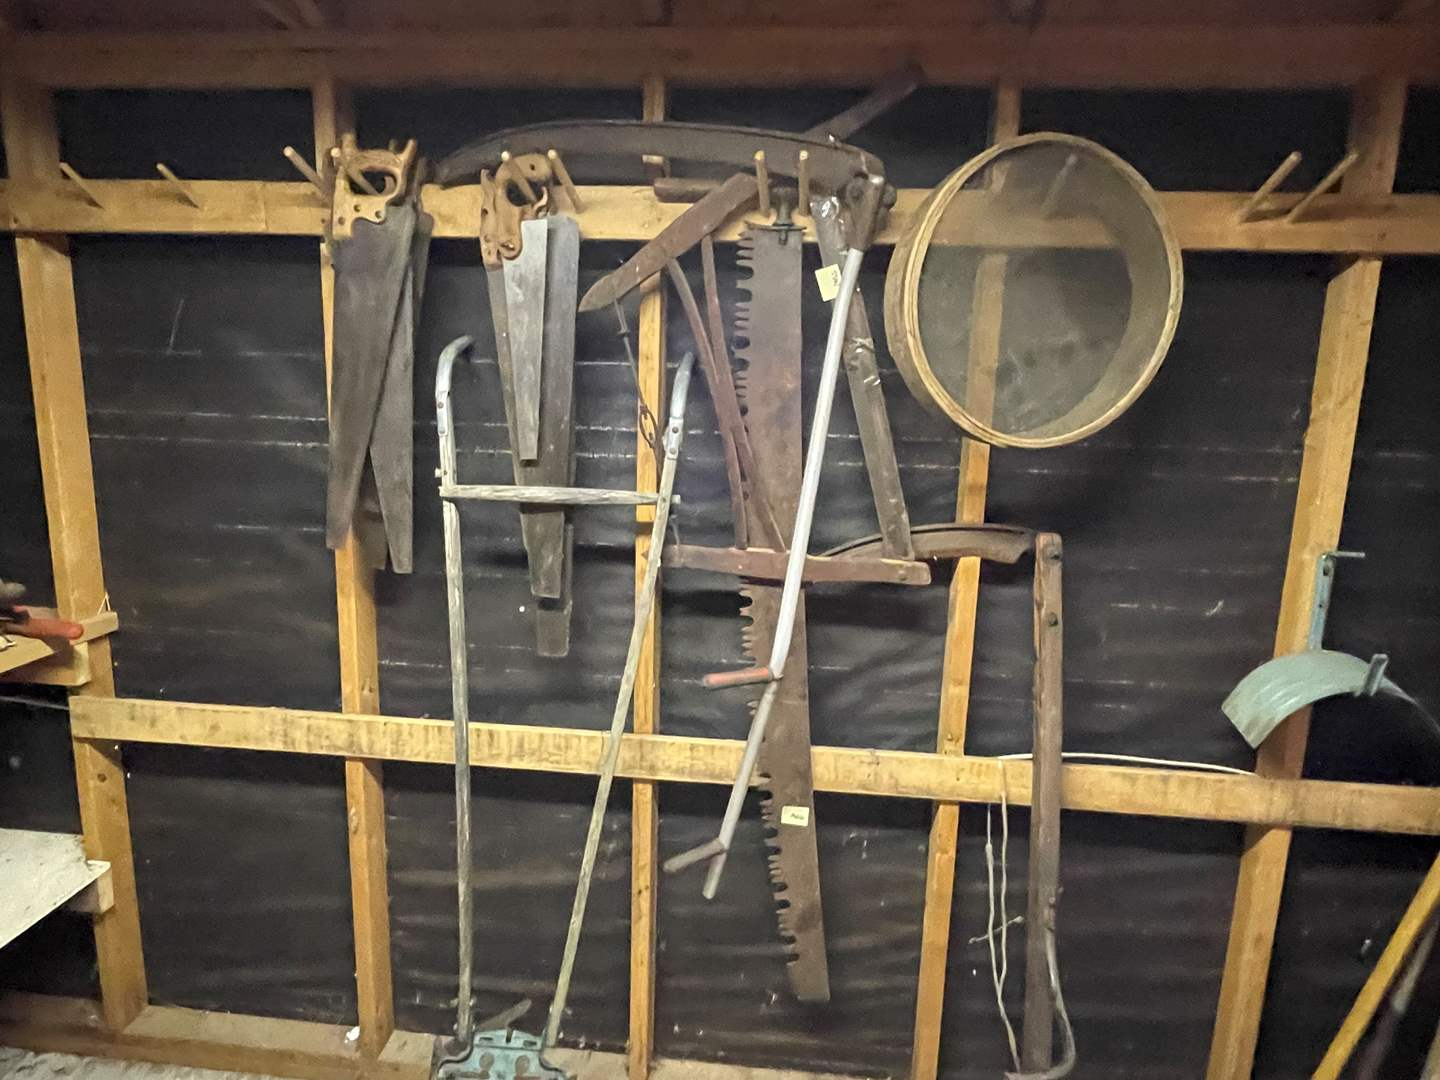 Lot # 91 - Lot of Antique and Old Tools - Scythes, Saws, Tiller and Various Garden Tools (main image)